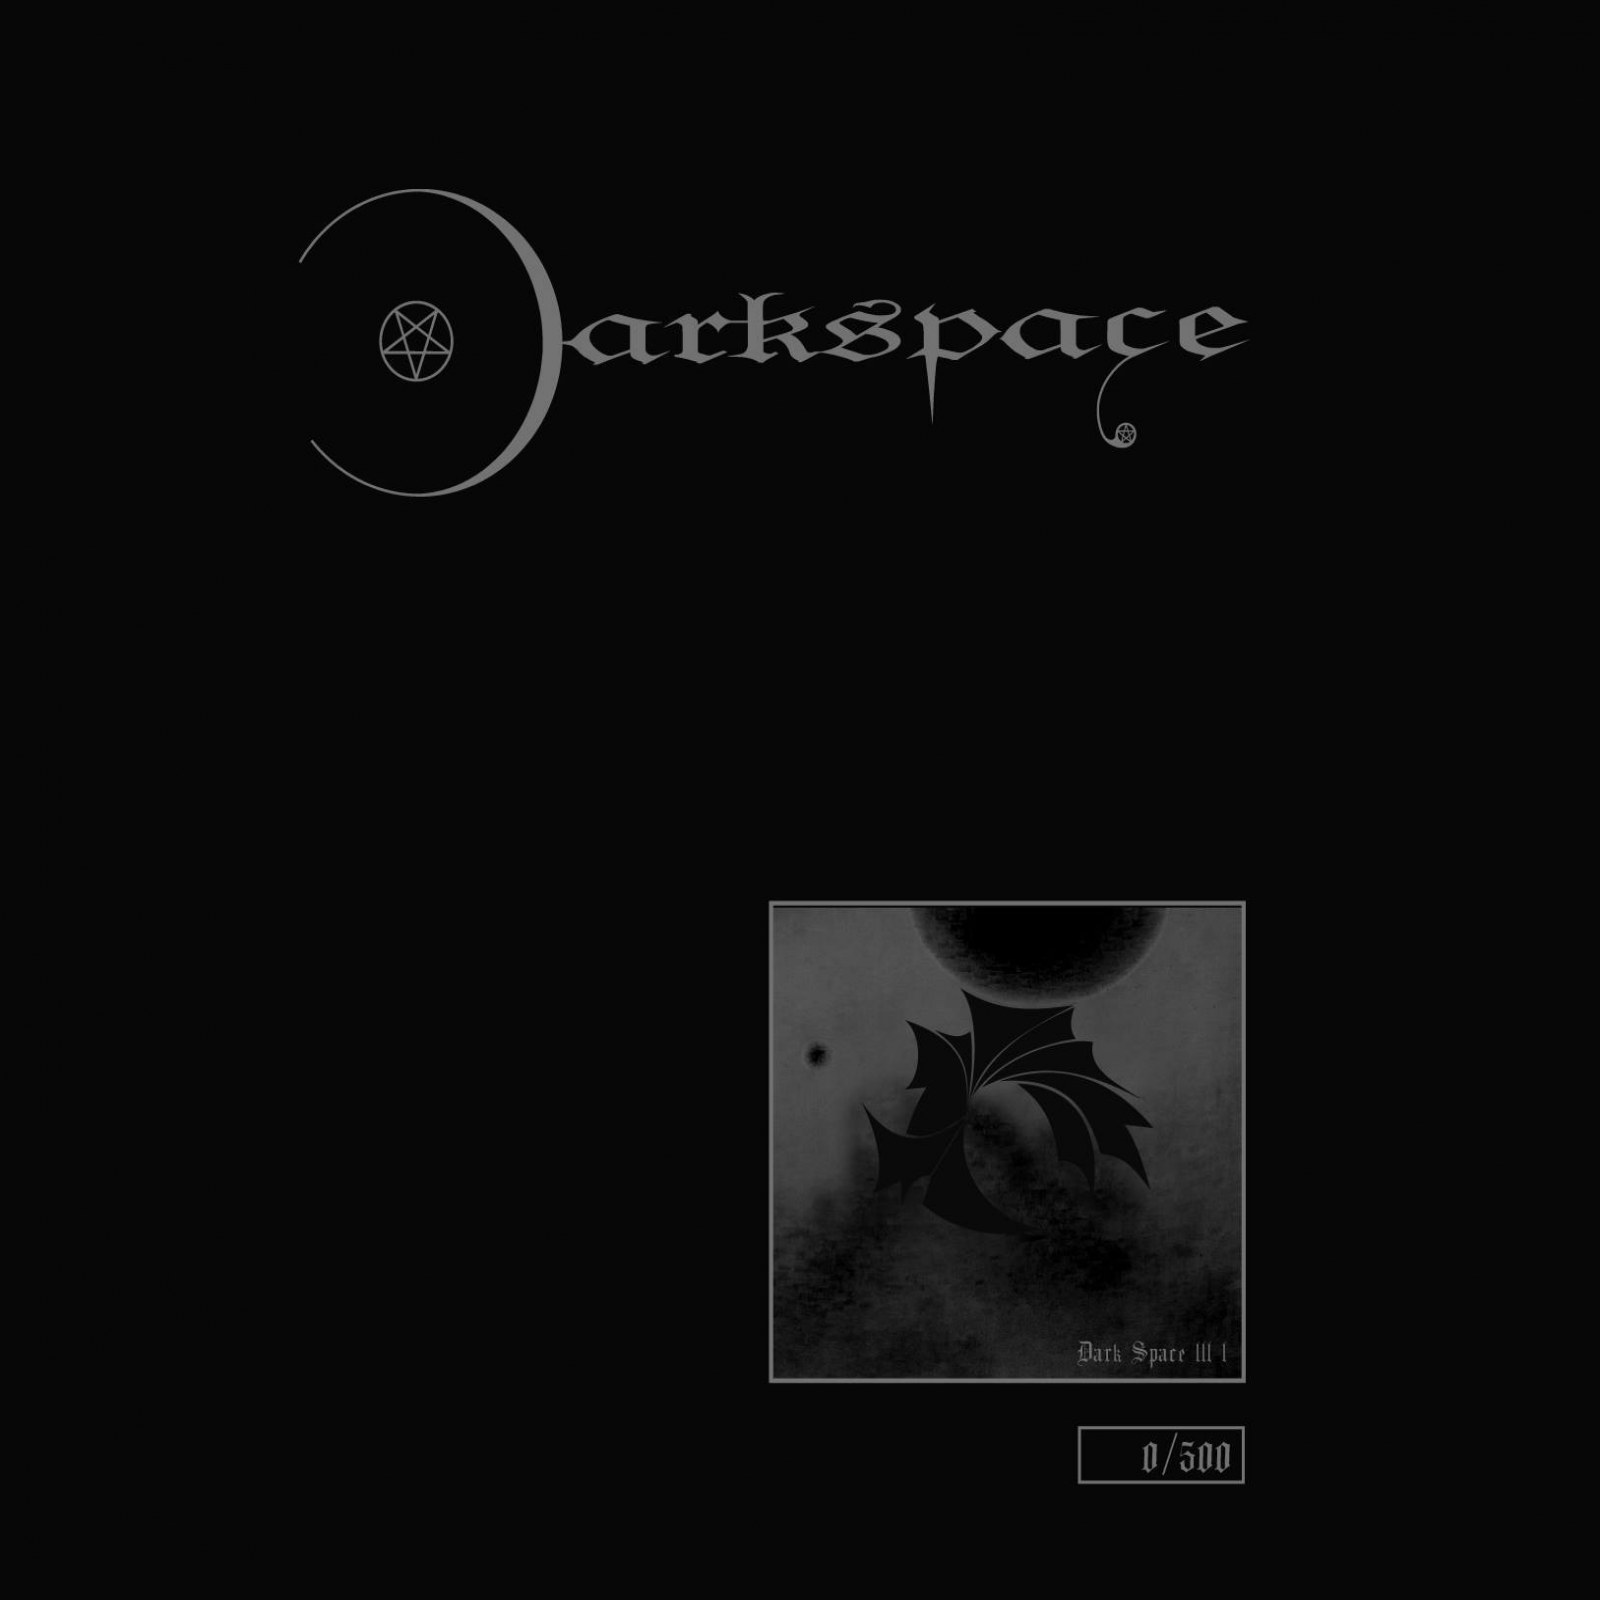 Review for Darkspace - Dark Space III I